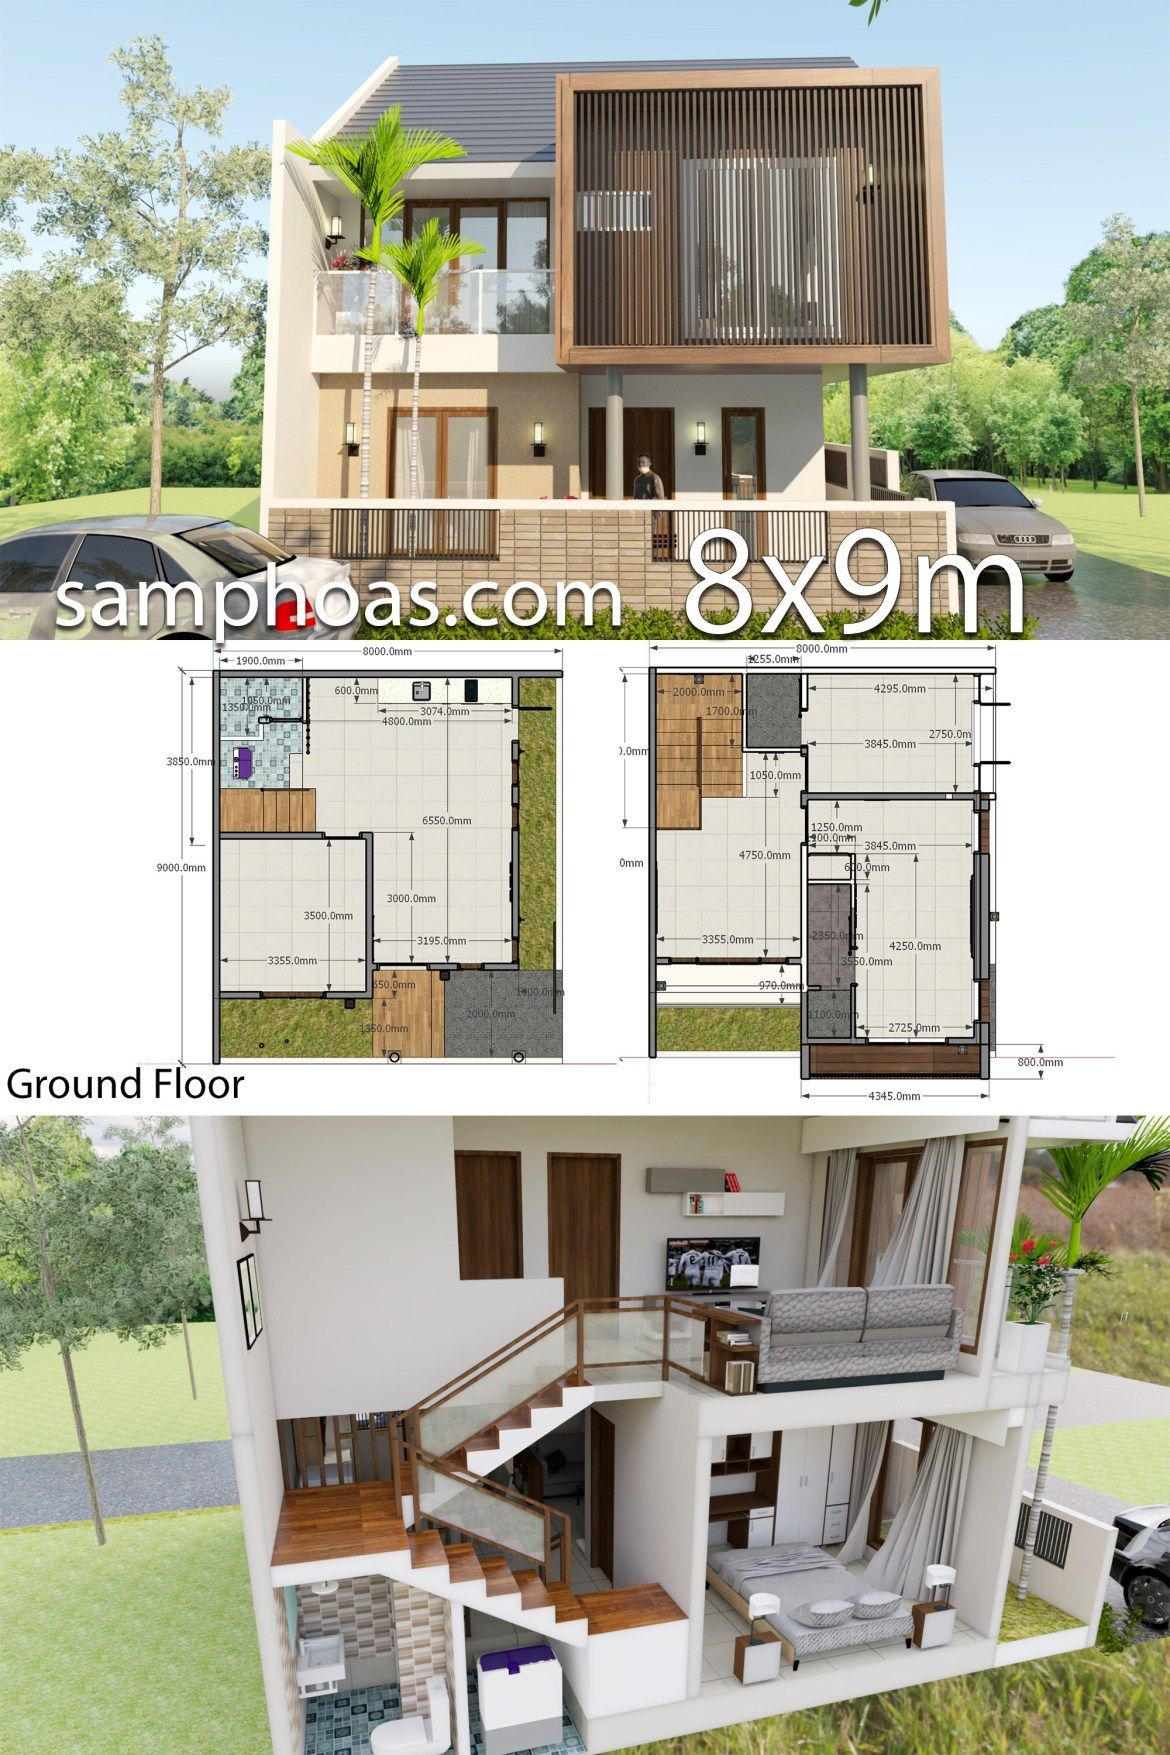 Interior Design Plan 8x9m With 3 Bedrooms Samphoas Plansearch Interior Design Plan Modern House Plans House Plans